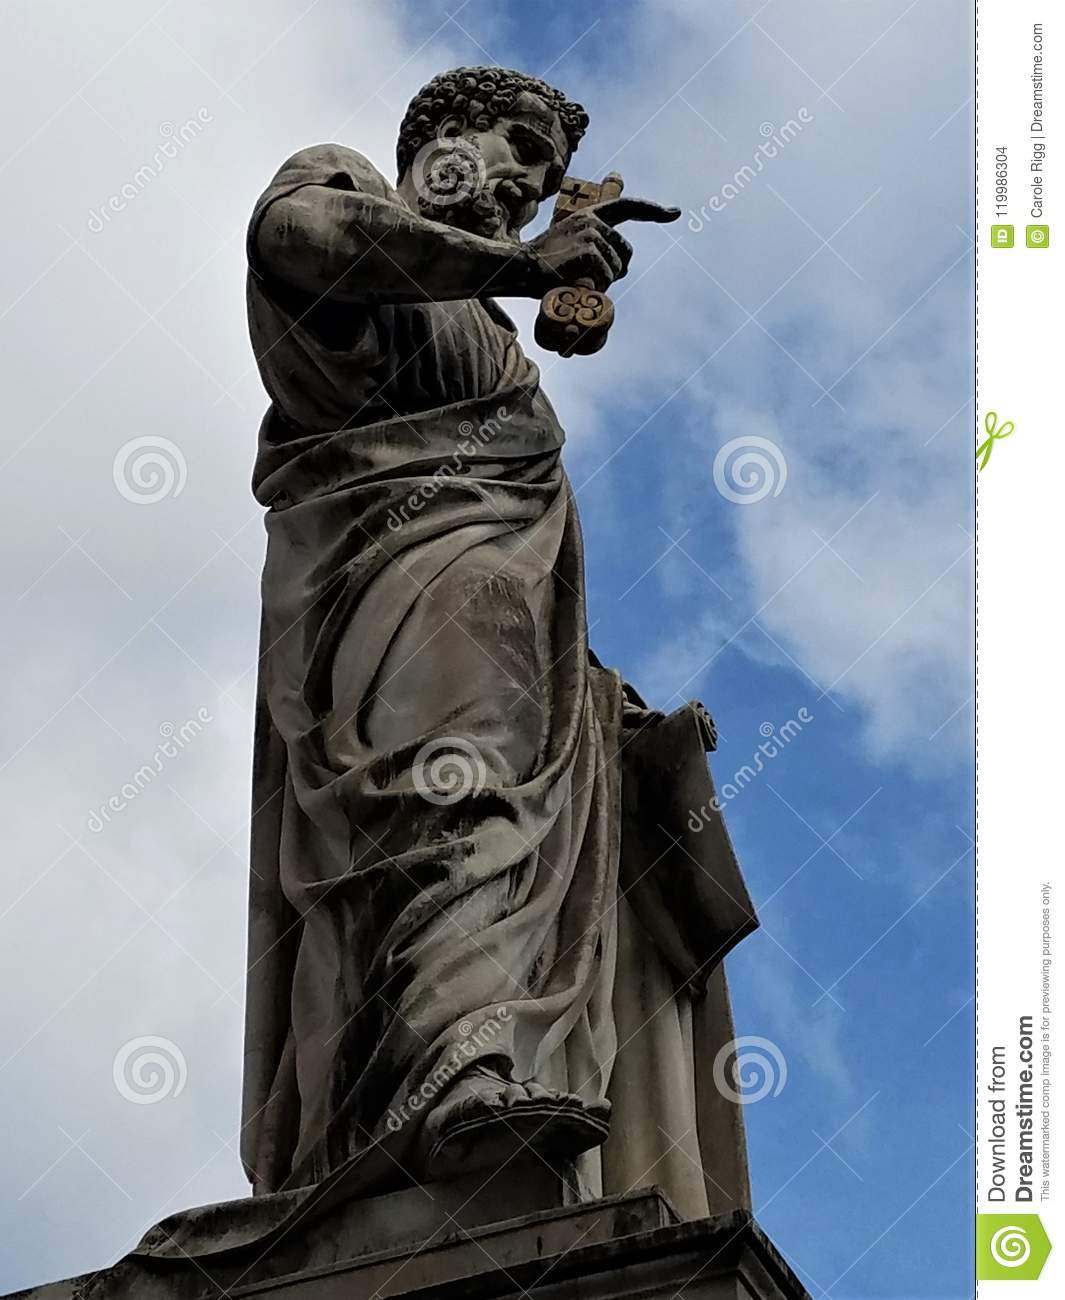 Sculpture of St. Peter in St. Peter`s Square